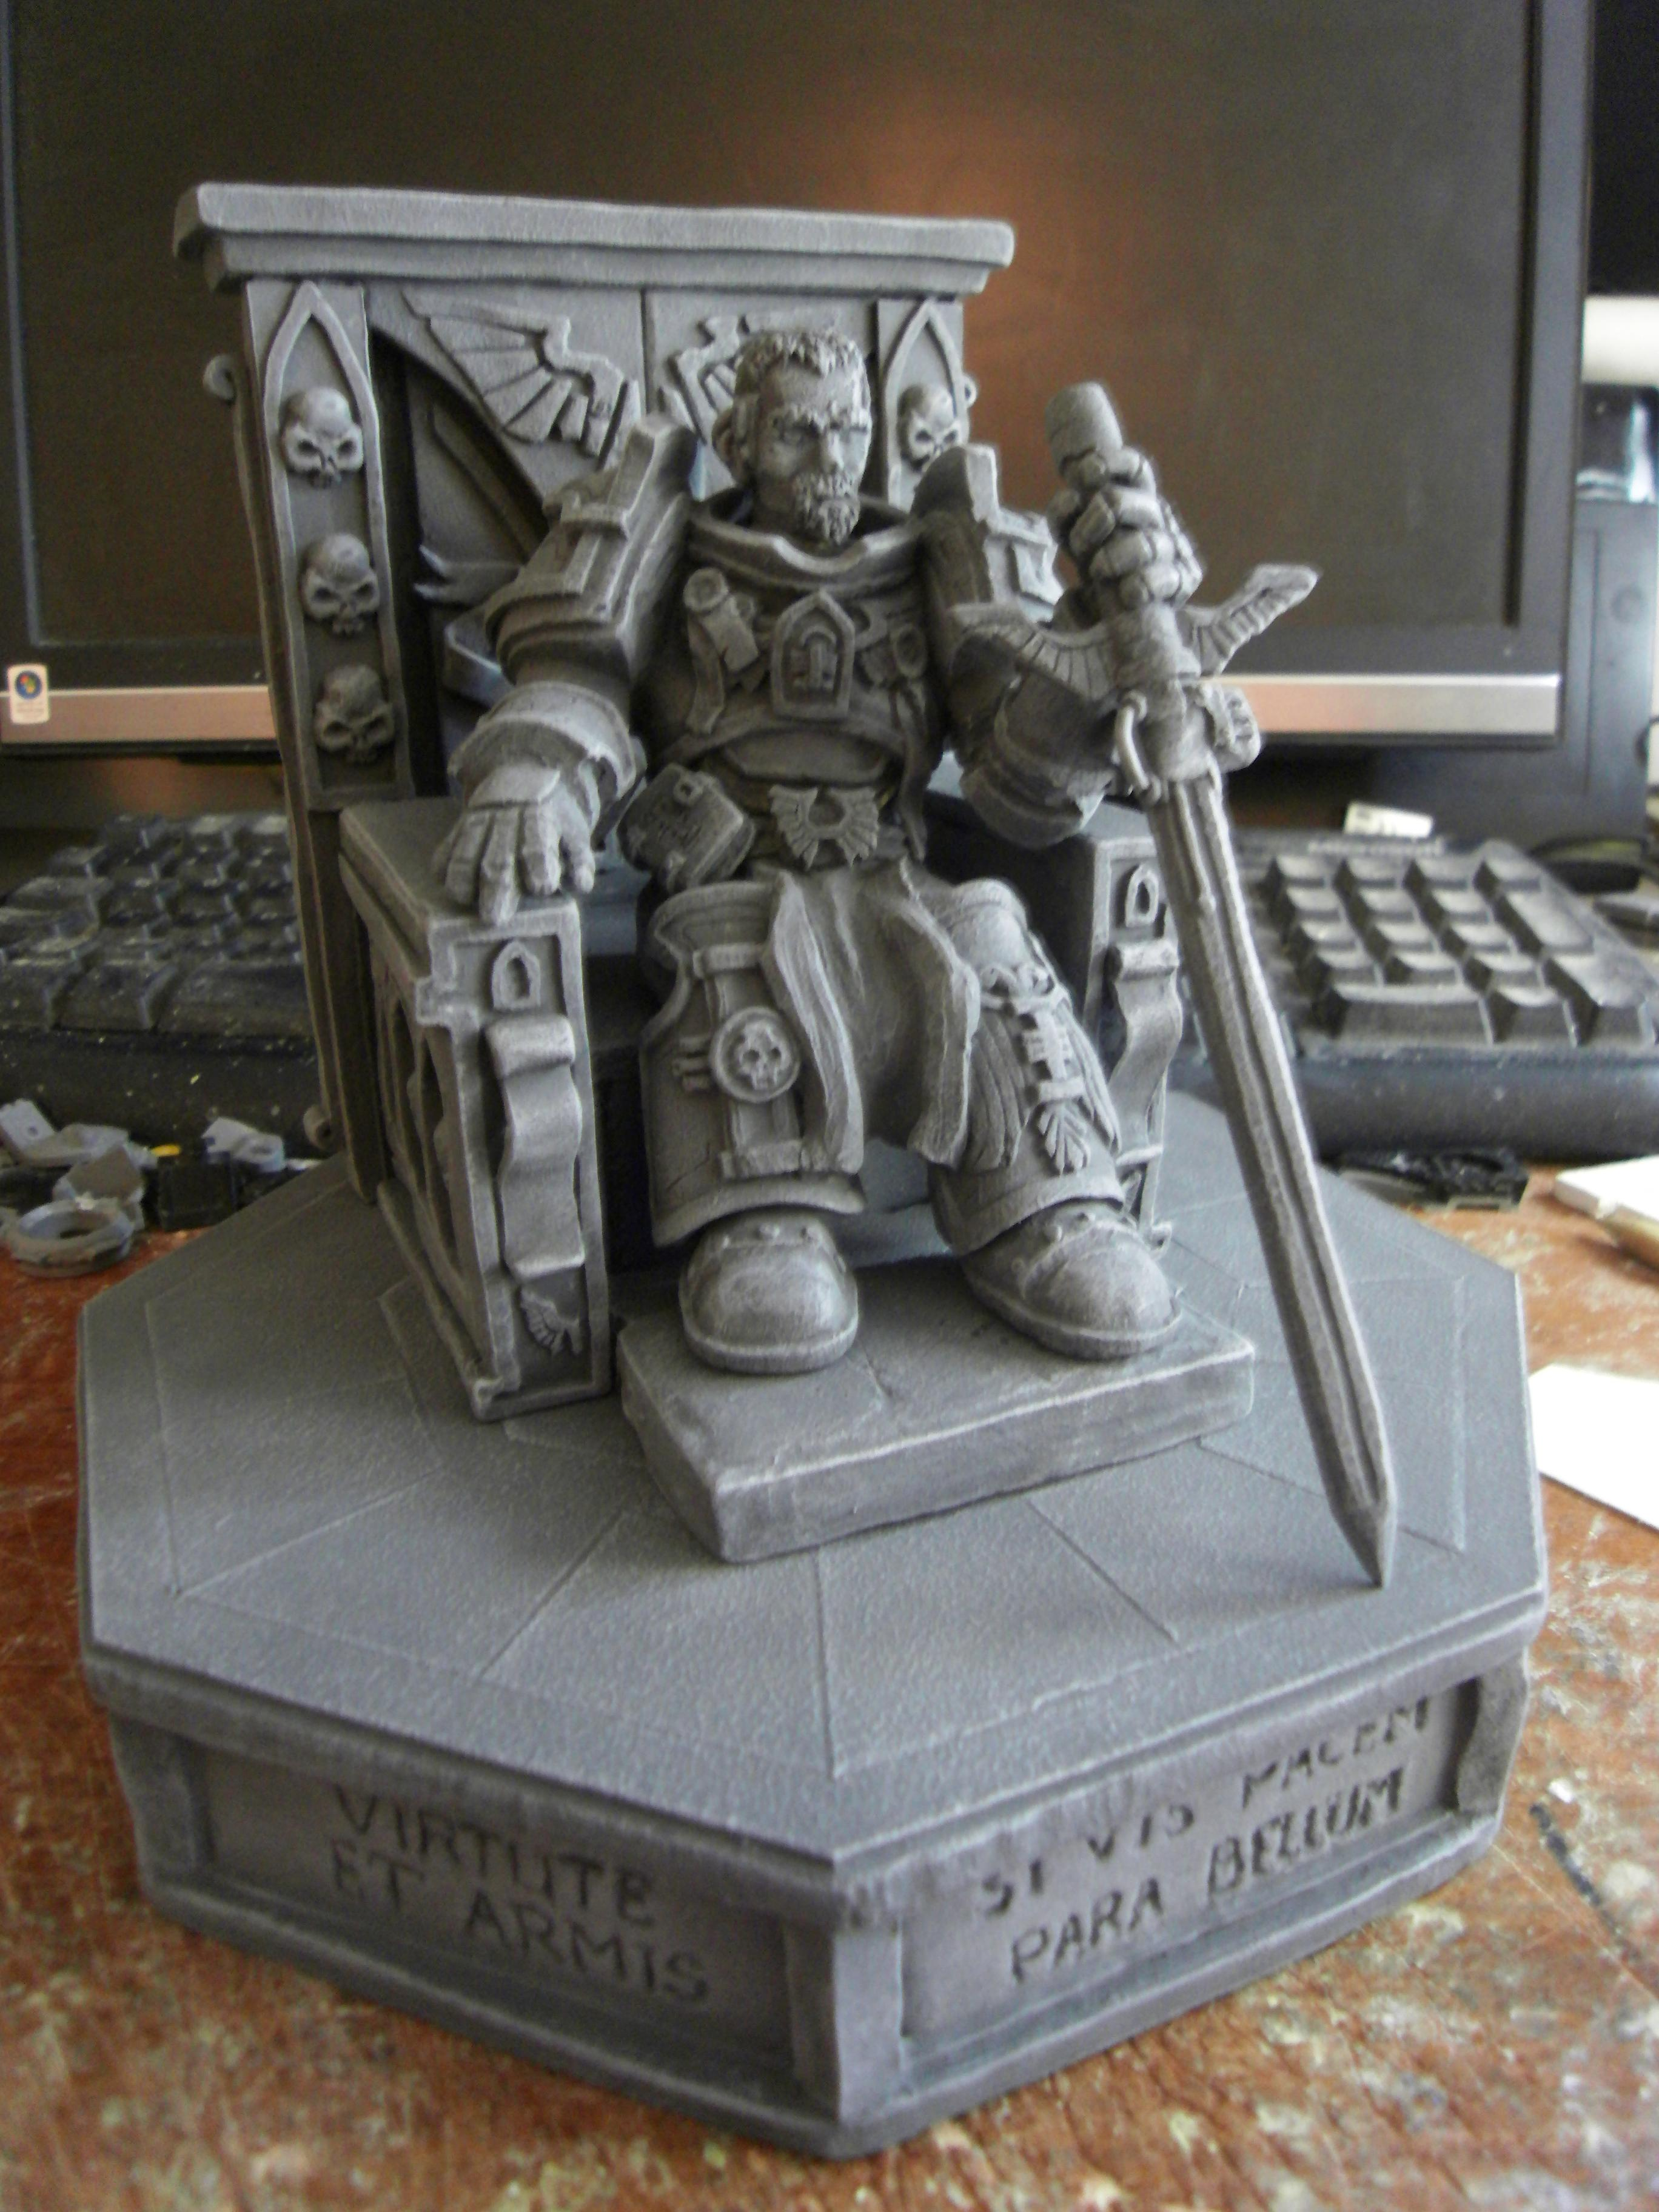 40k Inquisitor, 41st Millenium, Chaos, Chaos Lord, Chaos Space Marines, Imperial, Imperium, Imperium Of Man, Inquisition, Inquisitor, Inquisitor Lord, Lord Inquisitor, Monument, Power Sword, Scatch Build, Scratch Build, Sculpting, Sculpture, Space Marines, Statue, Statues, Stone, Terrain, Throne, Warhammer 40,000, Warhammer Fantasy